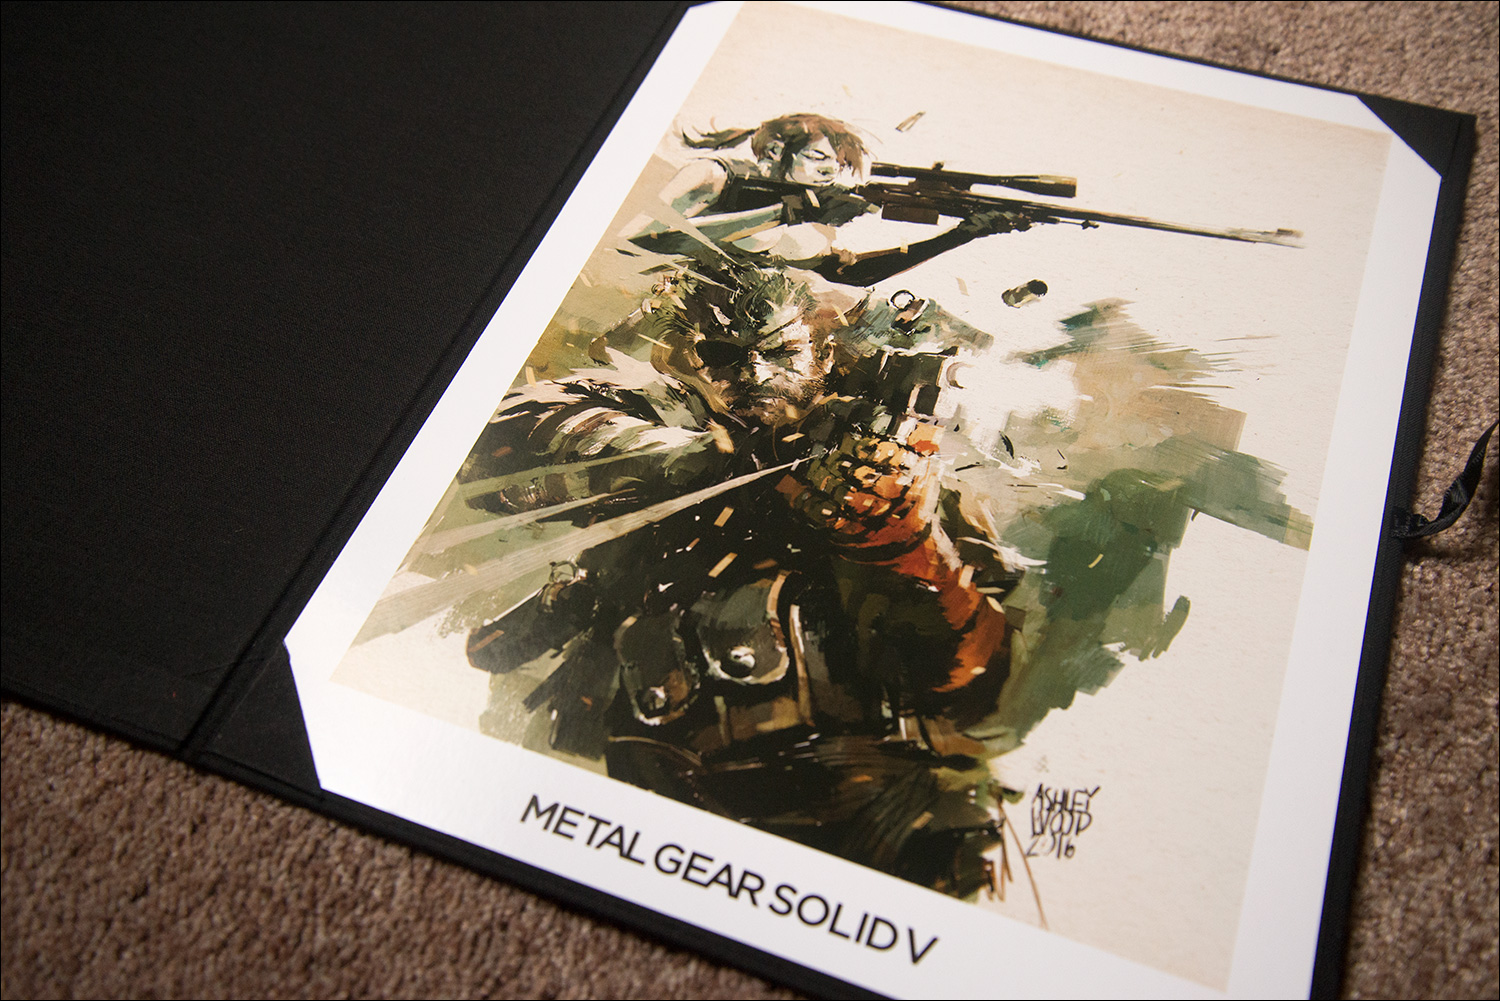 the-art-of-metal-gear-solid-v-limited-edition-fine-art-print